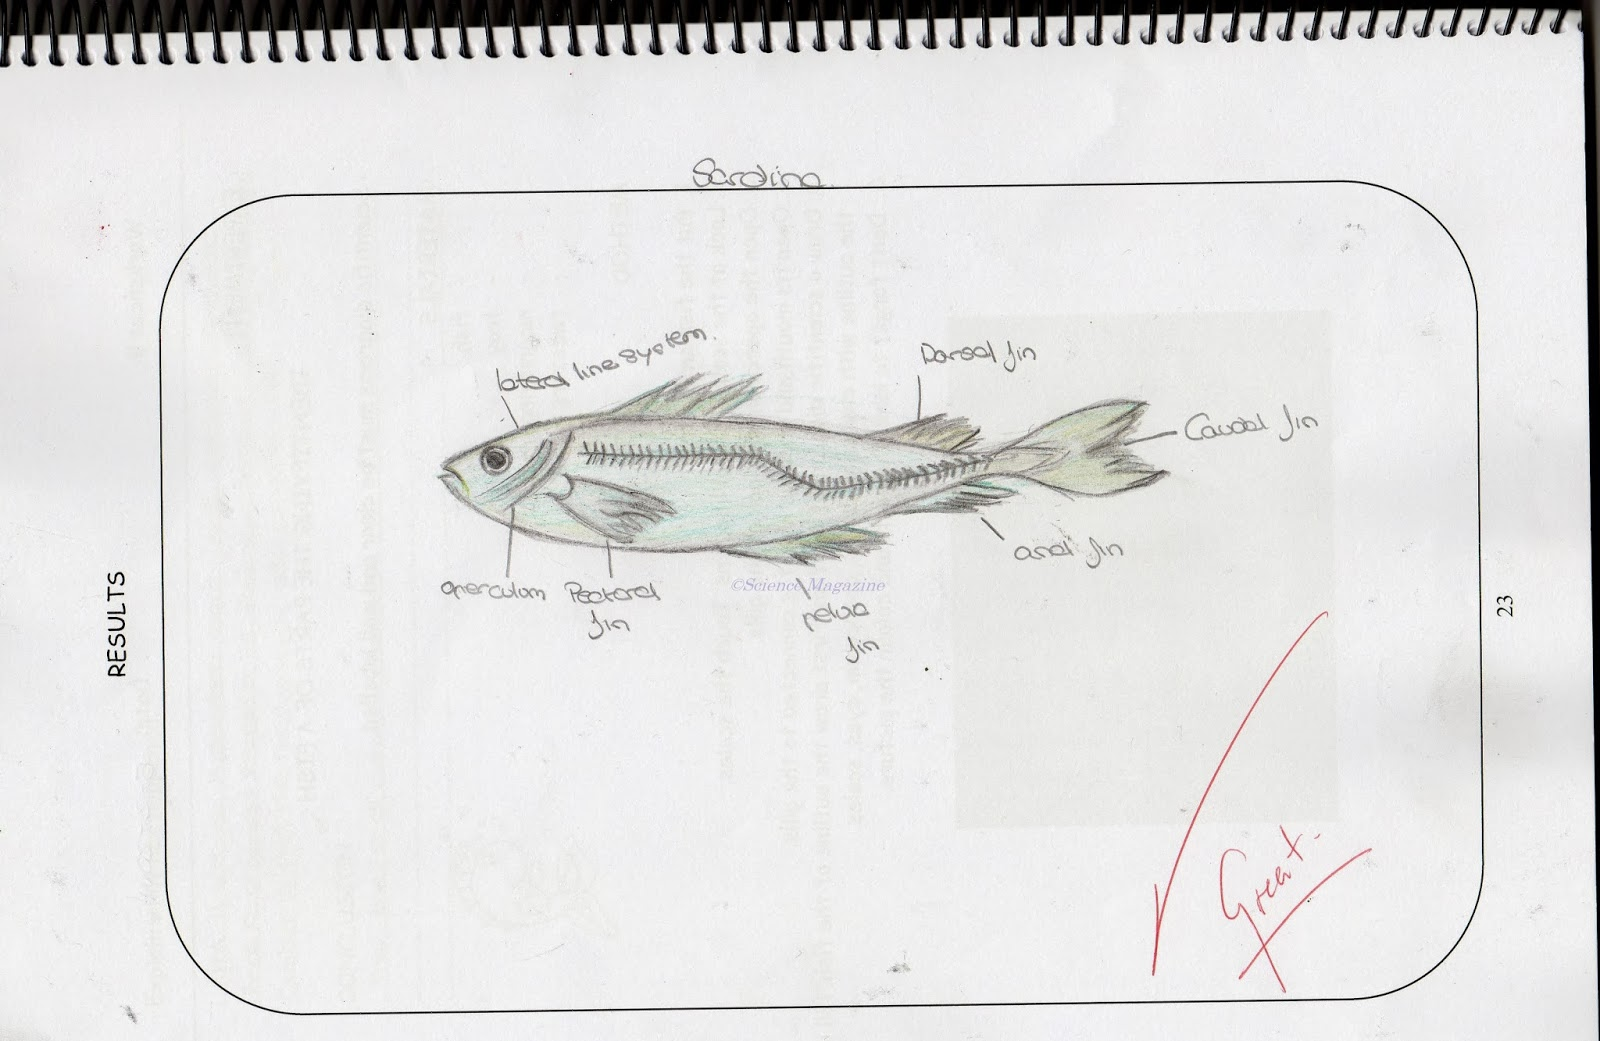 Science Magazine: STUDYING THE ANATOMY OF A FISH AND DRAWING A ...